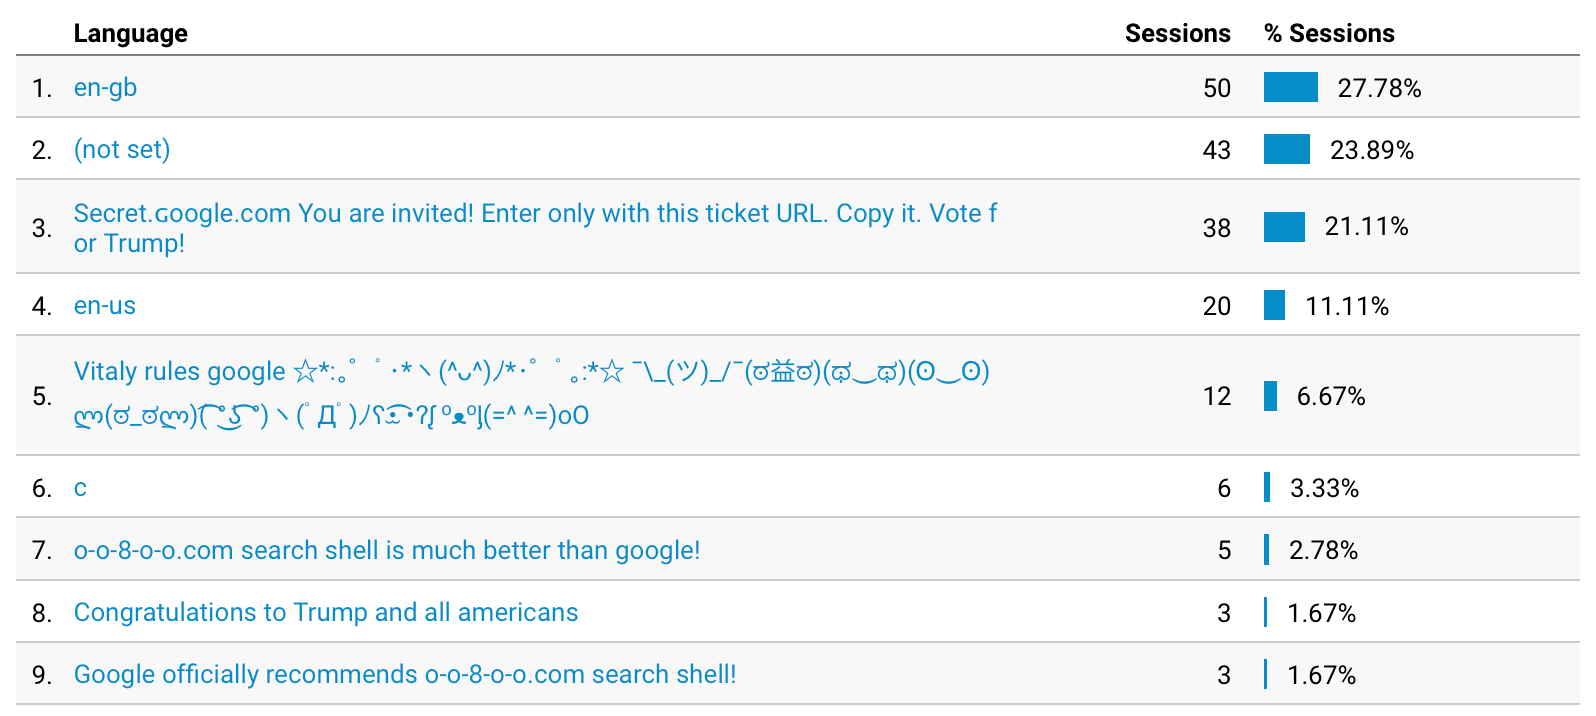 Google Analytics Languages